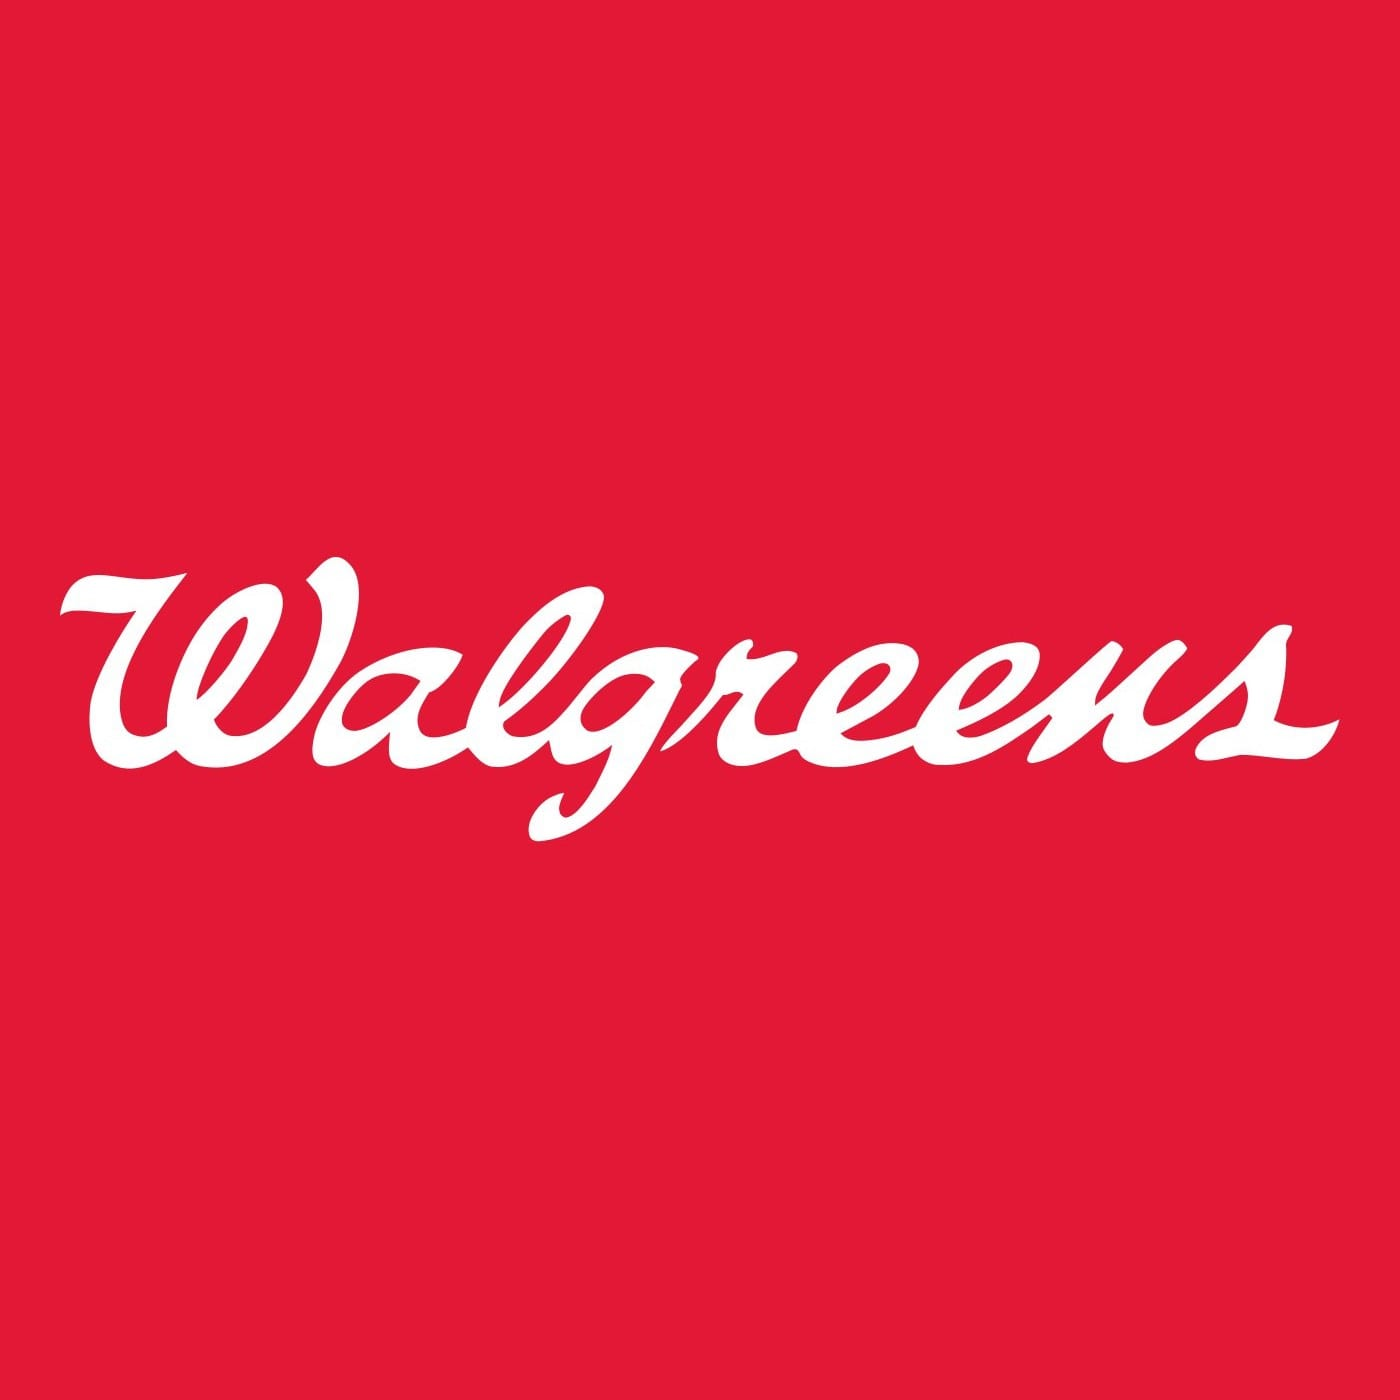 $3 Walgreens Cash when you buy 2 or more Sensodyne or Paradontax Toothpaste + Same Day Order Pickup!